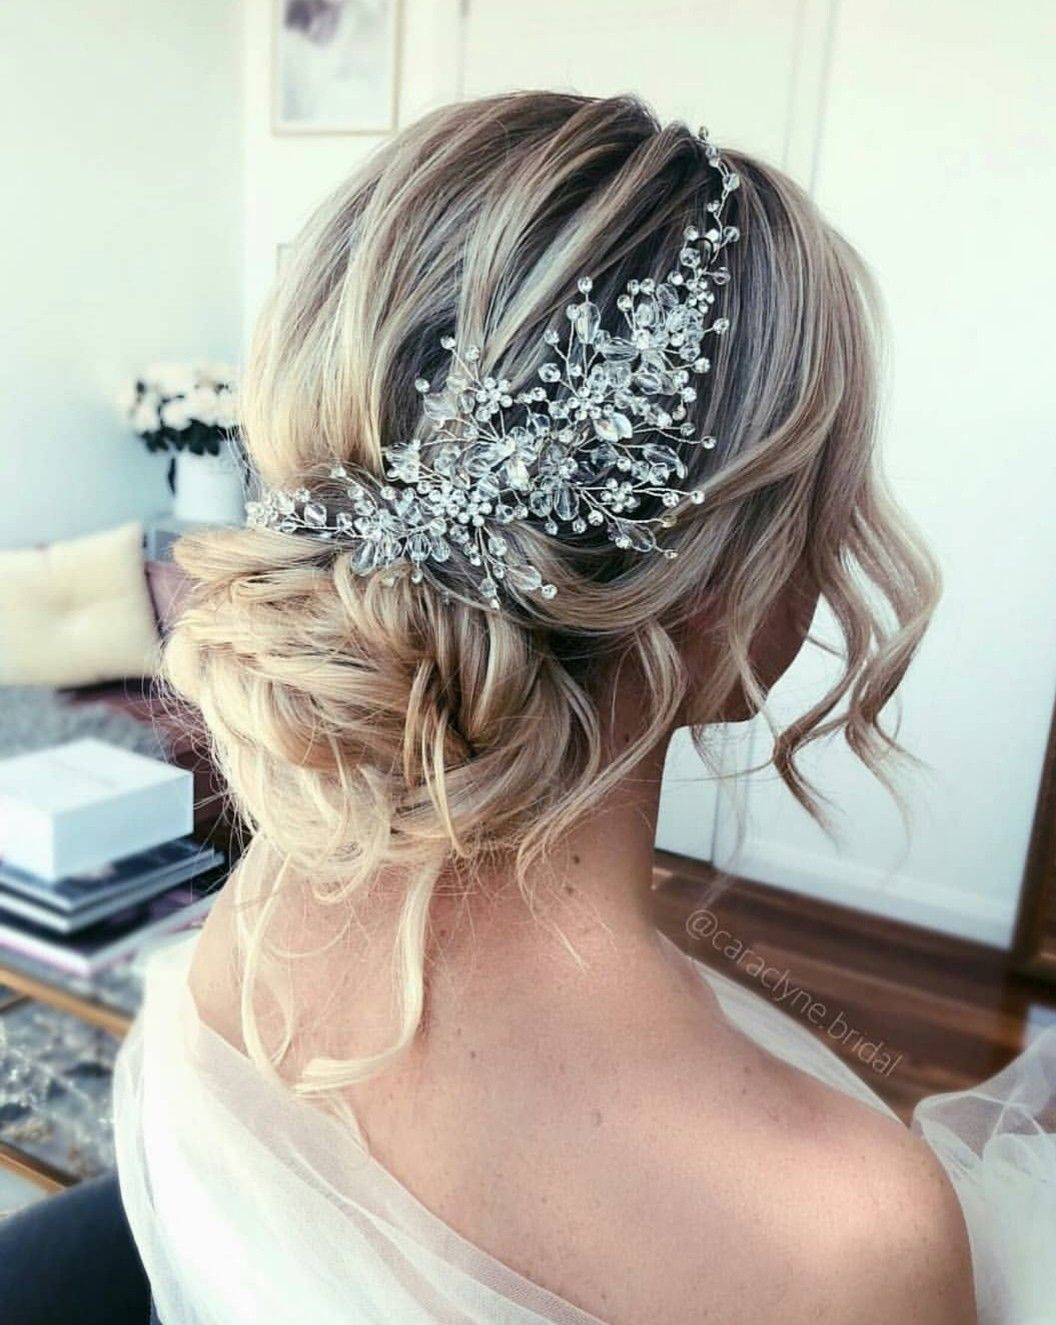 pin by jennie aviles on wedding hair in 2019 | wedding